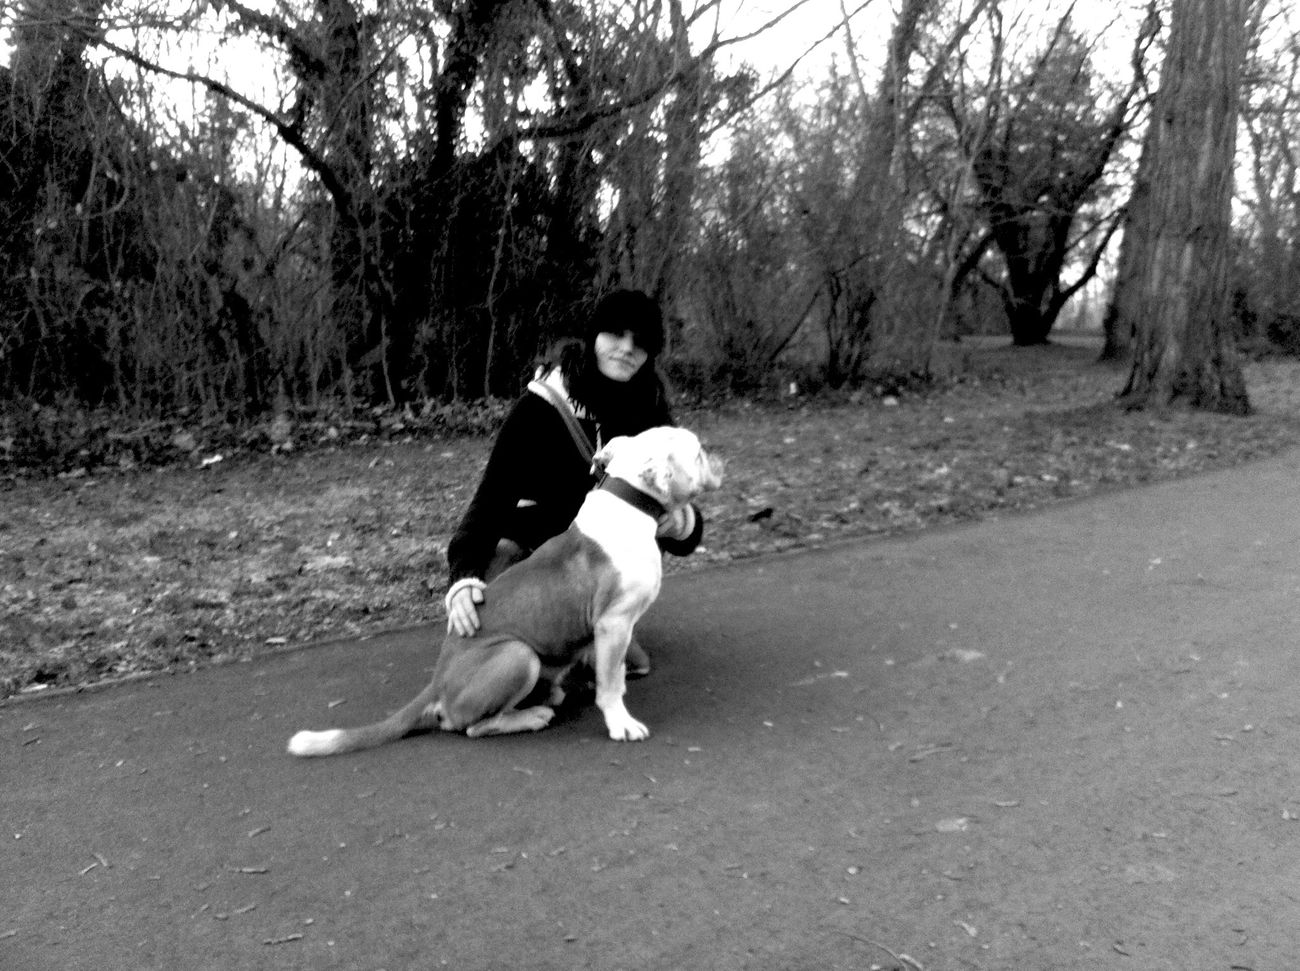 Taking Photos Blackandwhite Photography I Love My Dog Love ♥ Love Forever Dog Of Eeyem Dog❤ My Lovly Dog 💕 Sweet Dog 🐶 Narture Thats Me  Looking At Camera Woman Good Dog